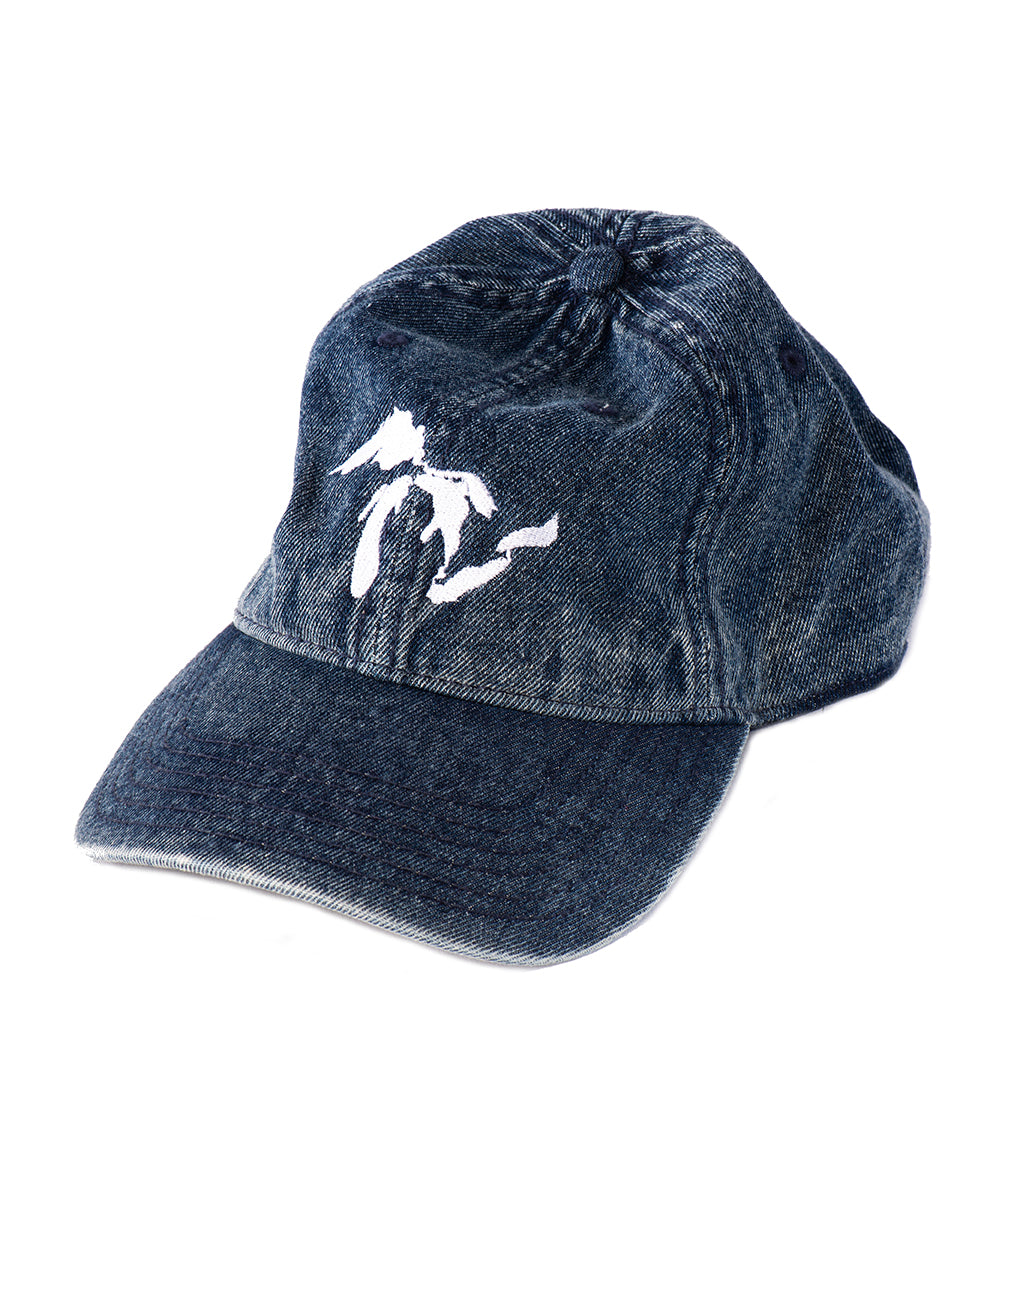 Great Lakes Snow Washed blue denim Dad Hat - The Great Lakes State